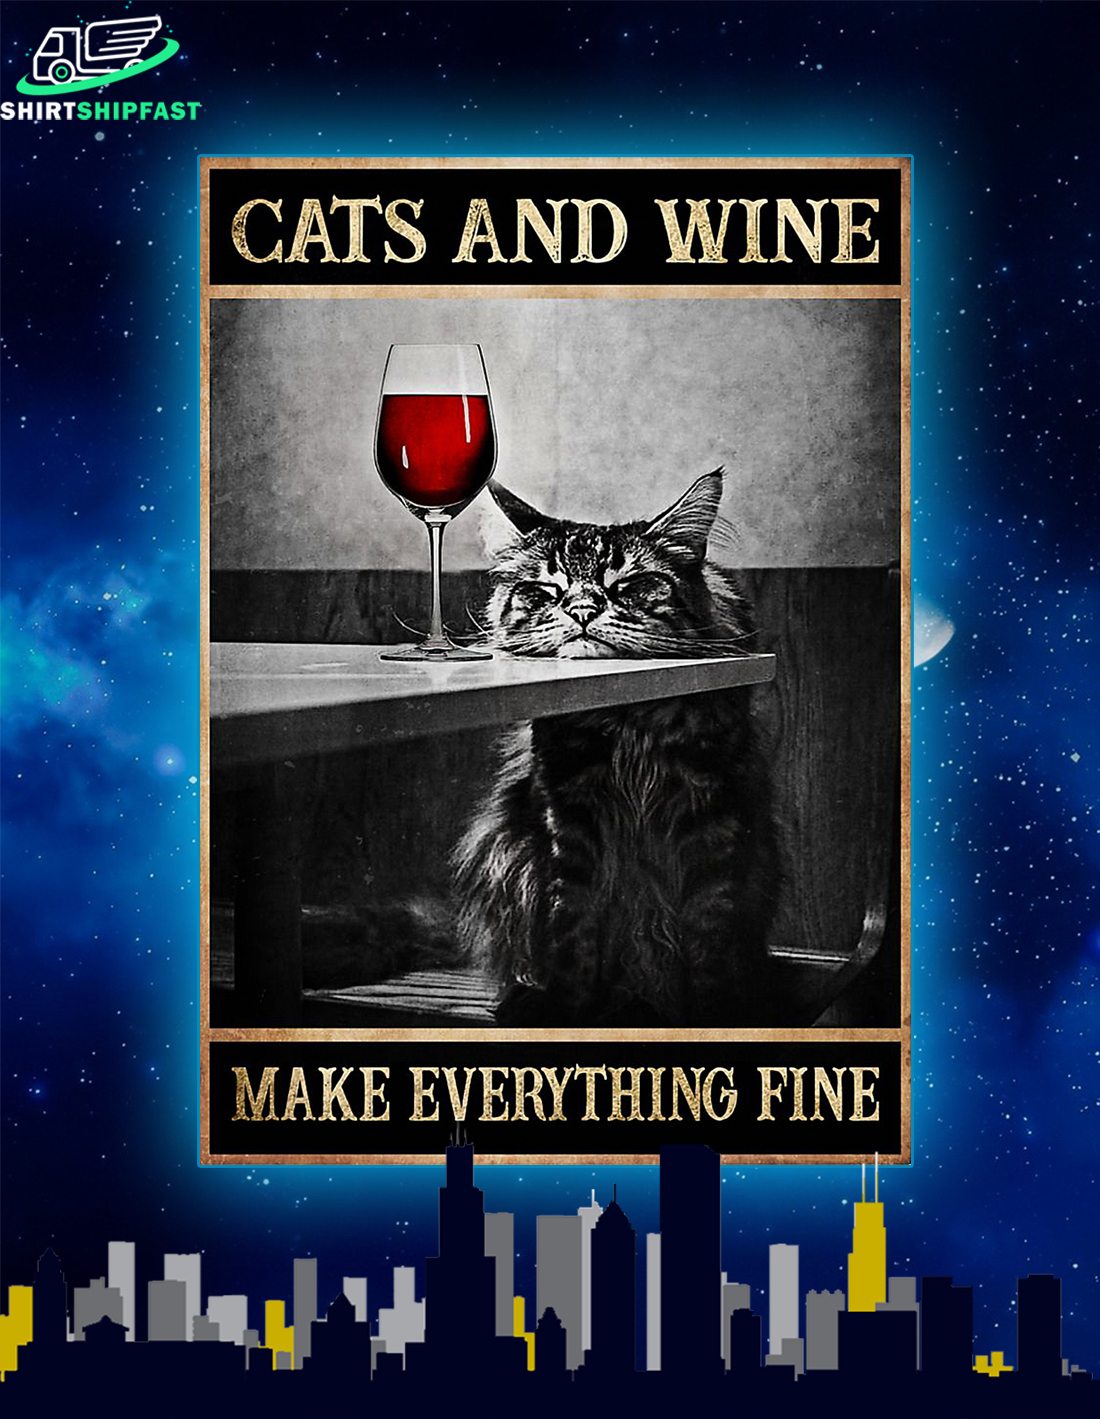 Cats and wine make everything fine poster - Picture 1